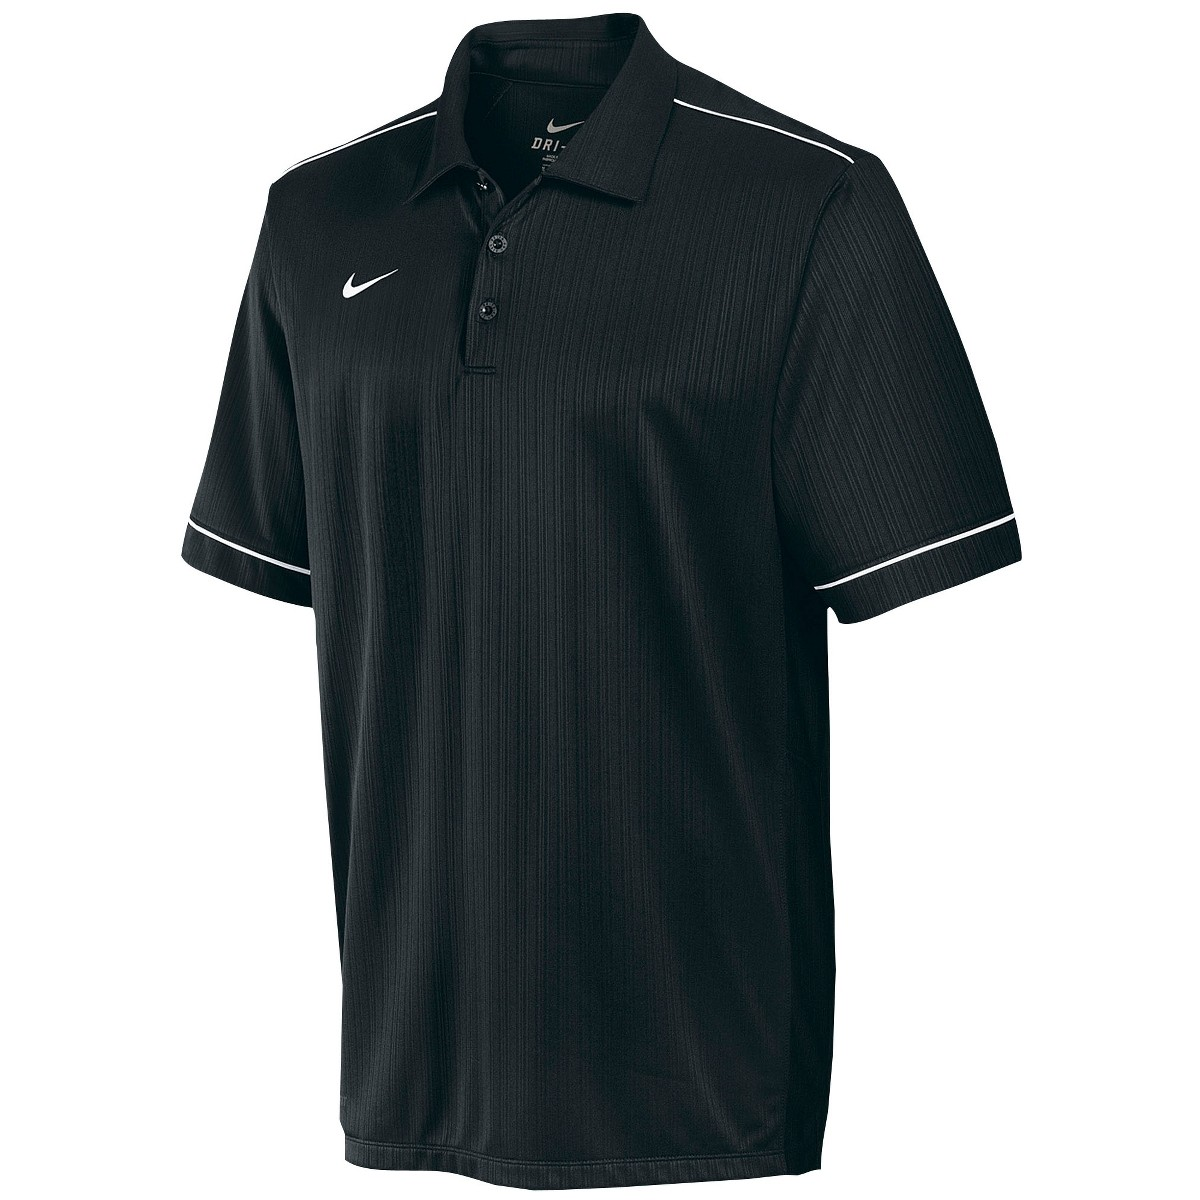 Nike men 39 s play action pass dri fit golf polo shirt ebay for Nike polo golf shirts